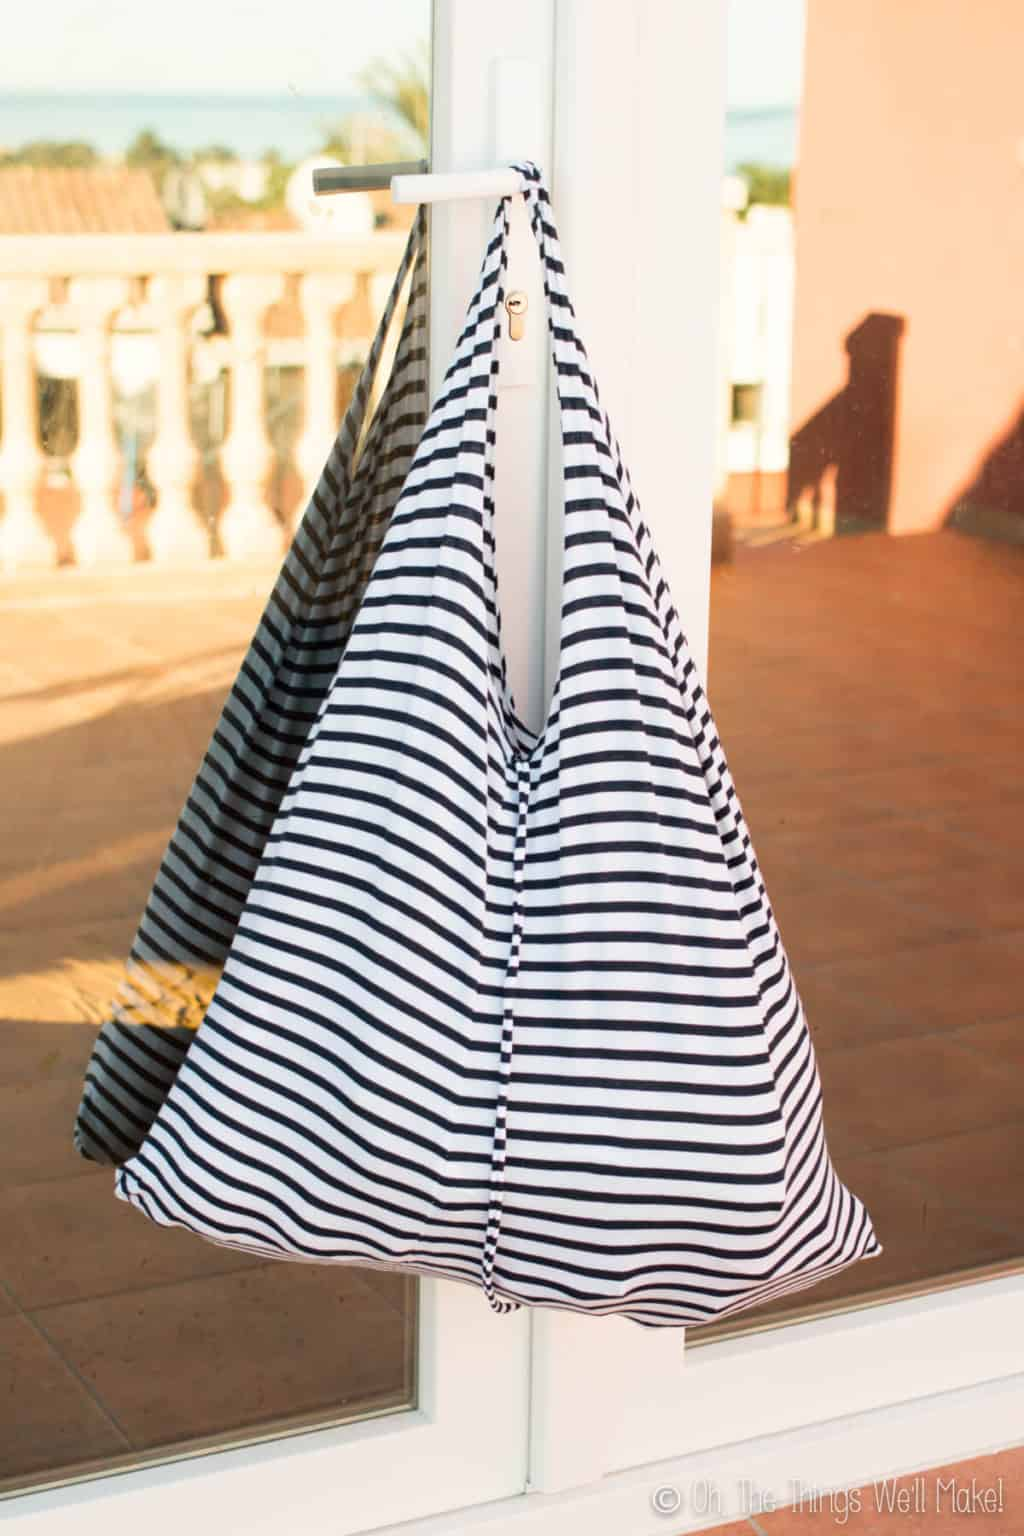 Finished striped white and black t-shirt bag hanging on a white glass door outside.